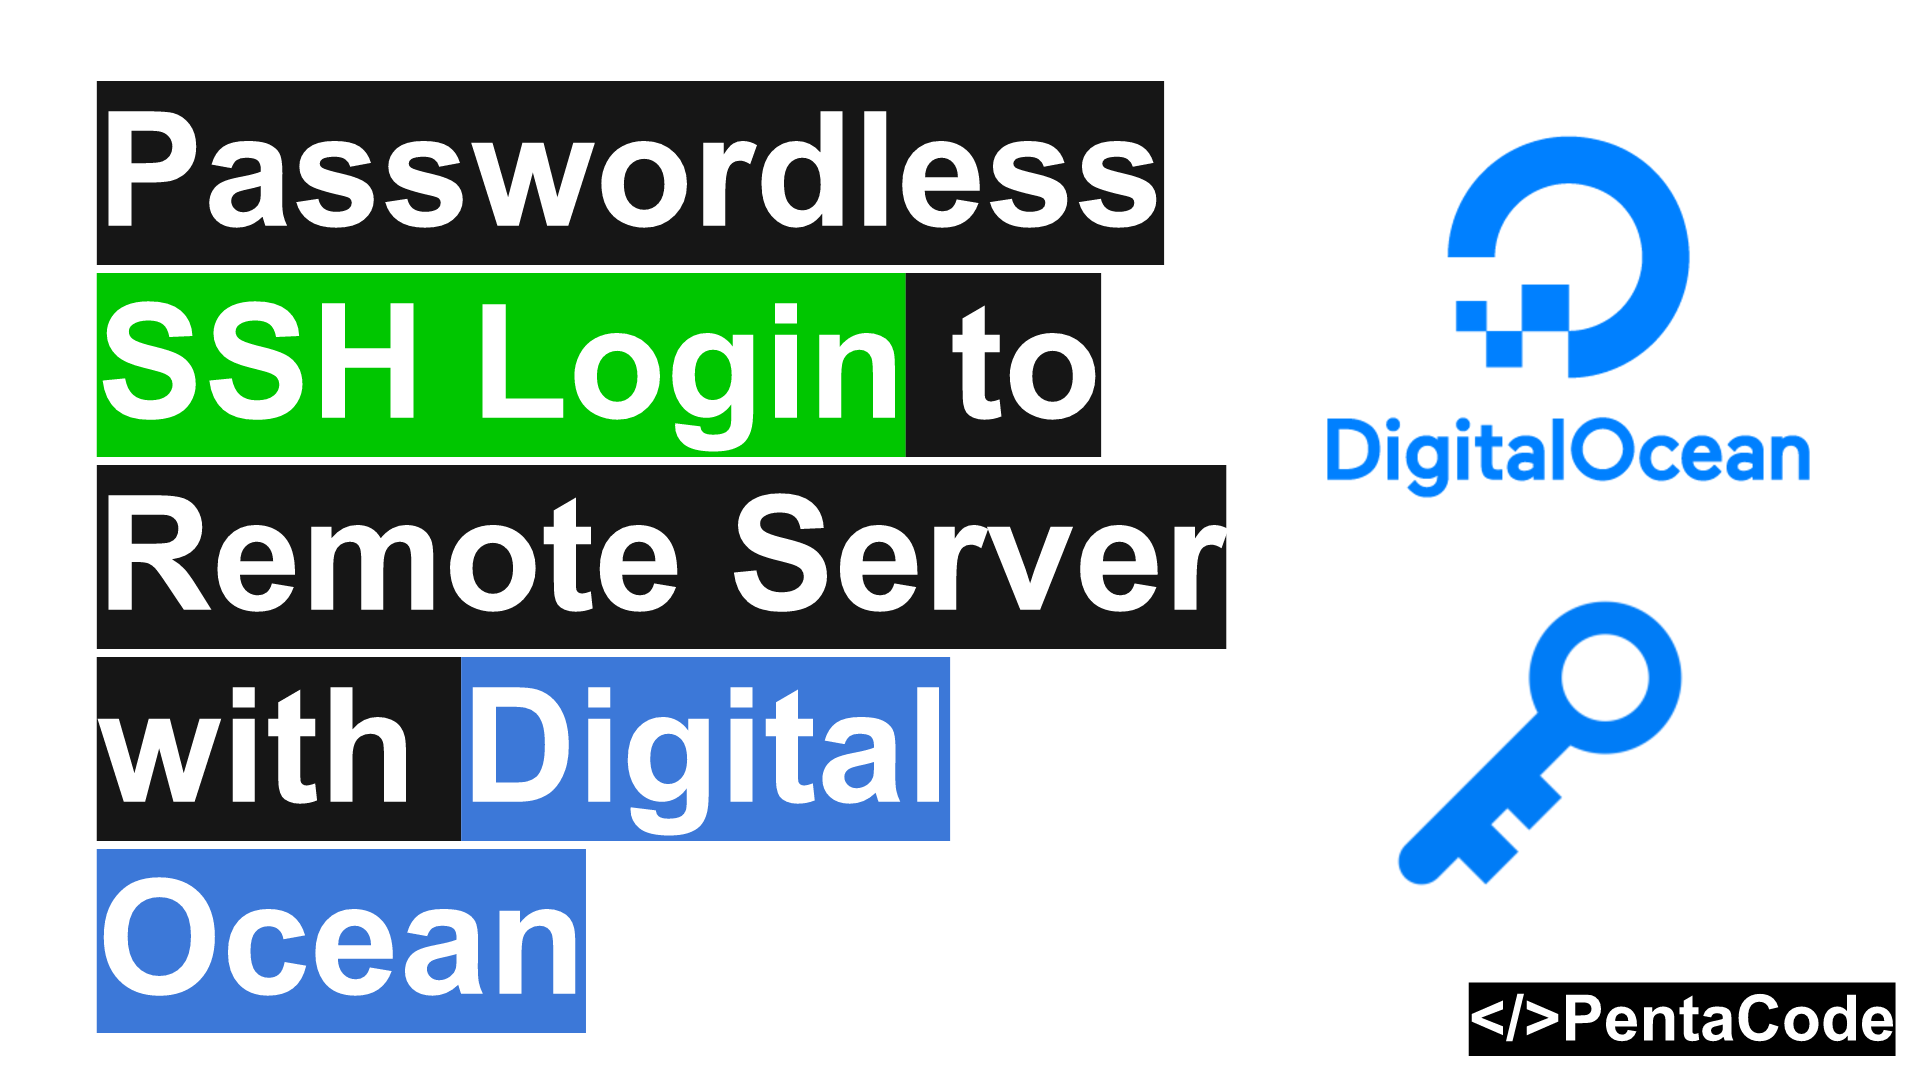 Passwordless SSH Login to Remote Server with Digital Ocean | PentaCode